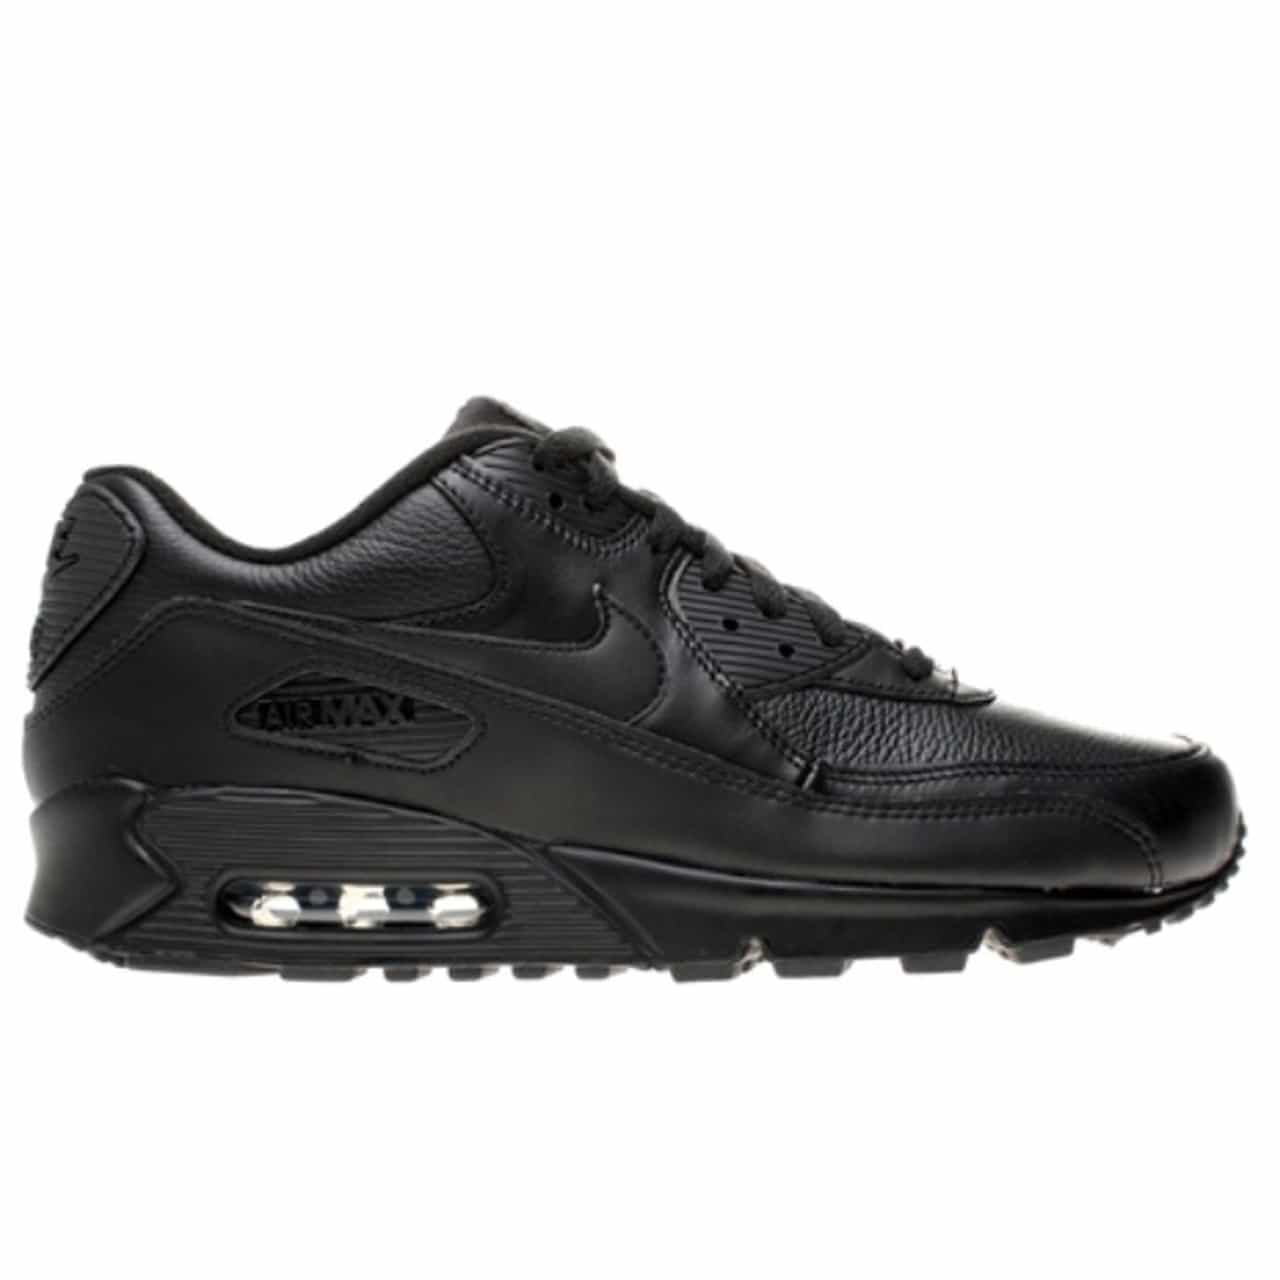 ADIDASI ORIGINALI NIKE AIR MAX 90 LEATHER - 302519 001